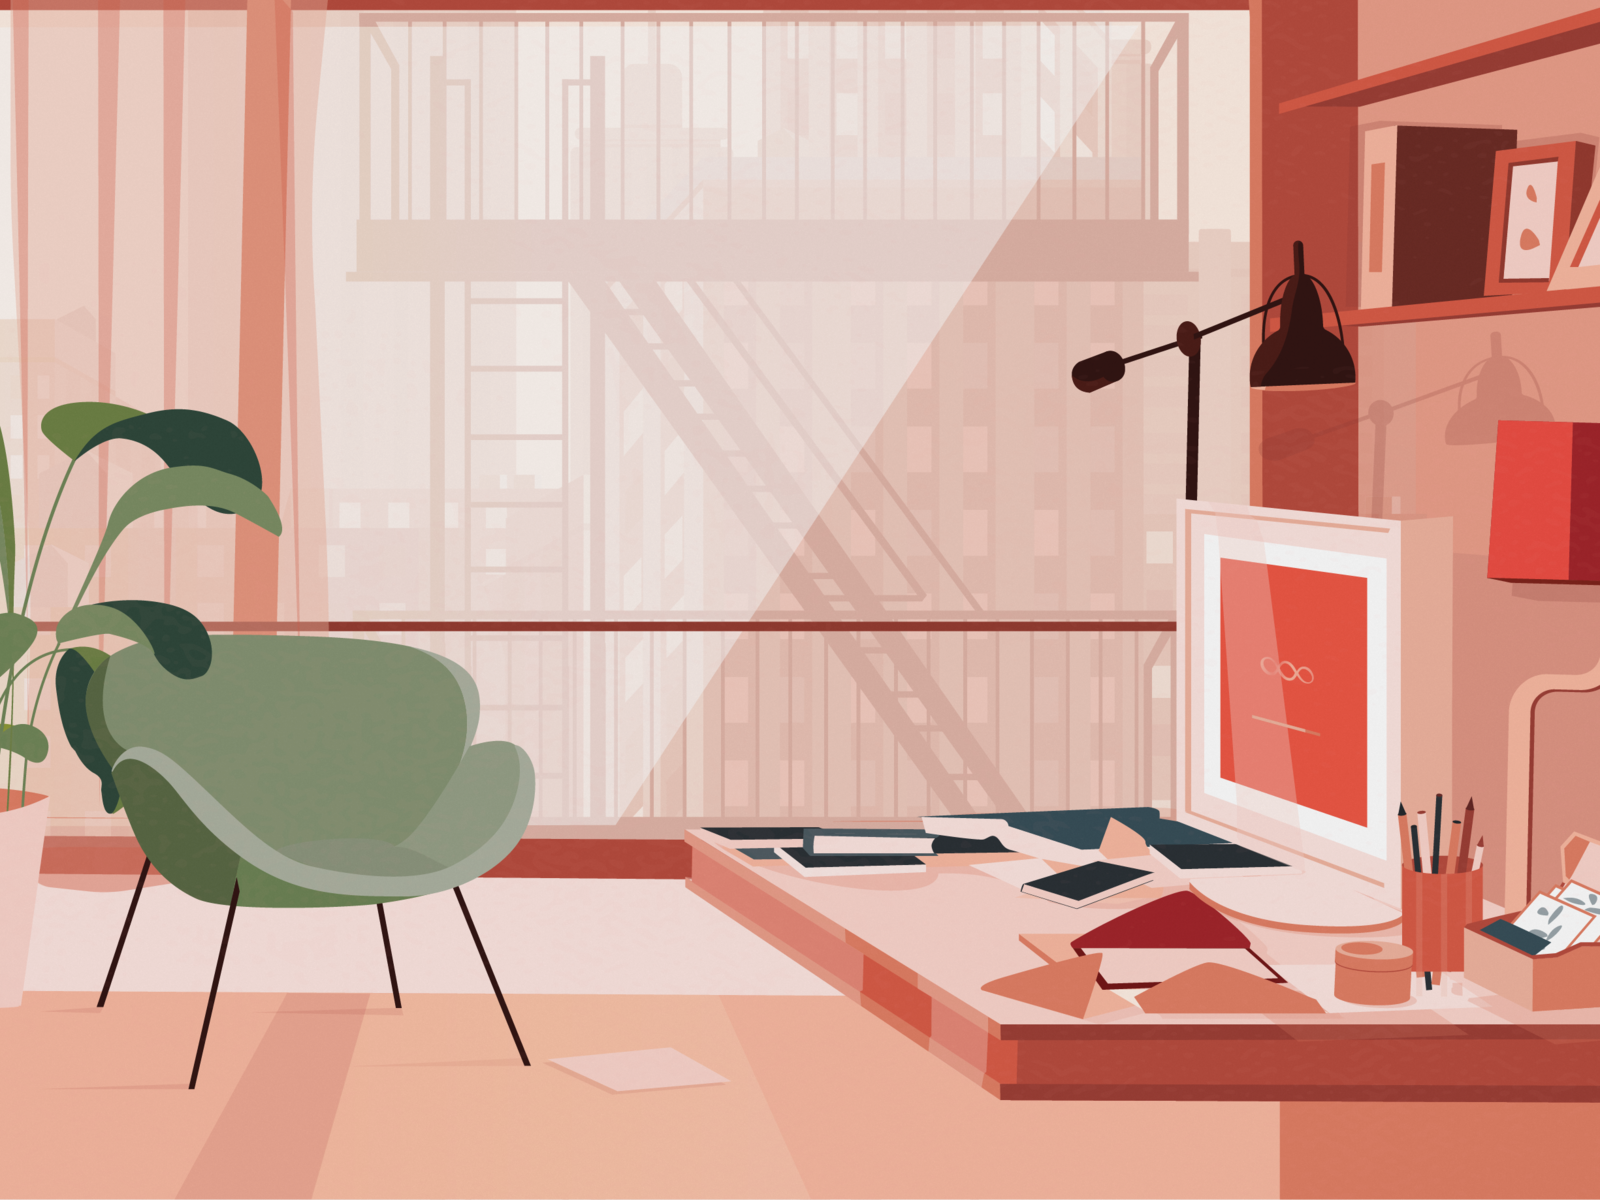 Her Mood With Images Interior Illustration Design Grafico